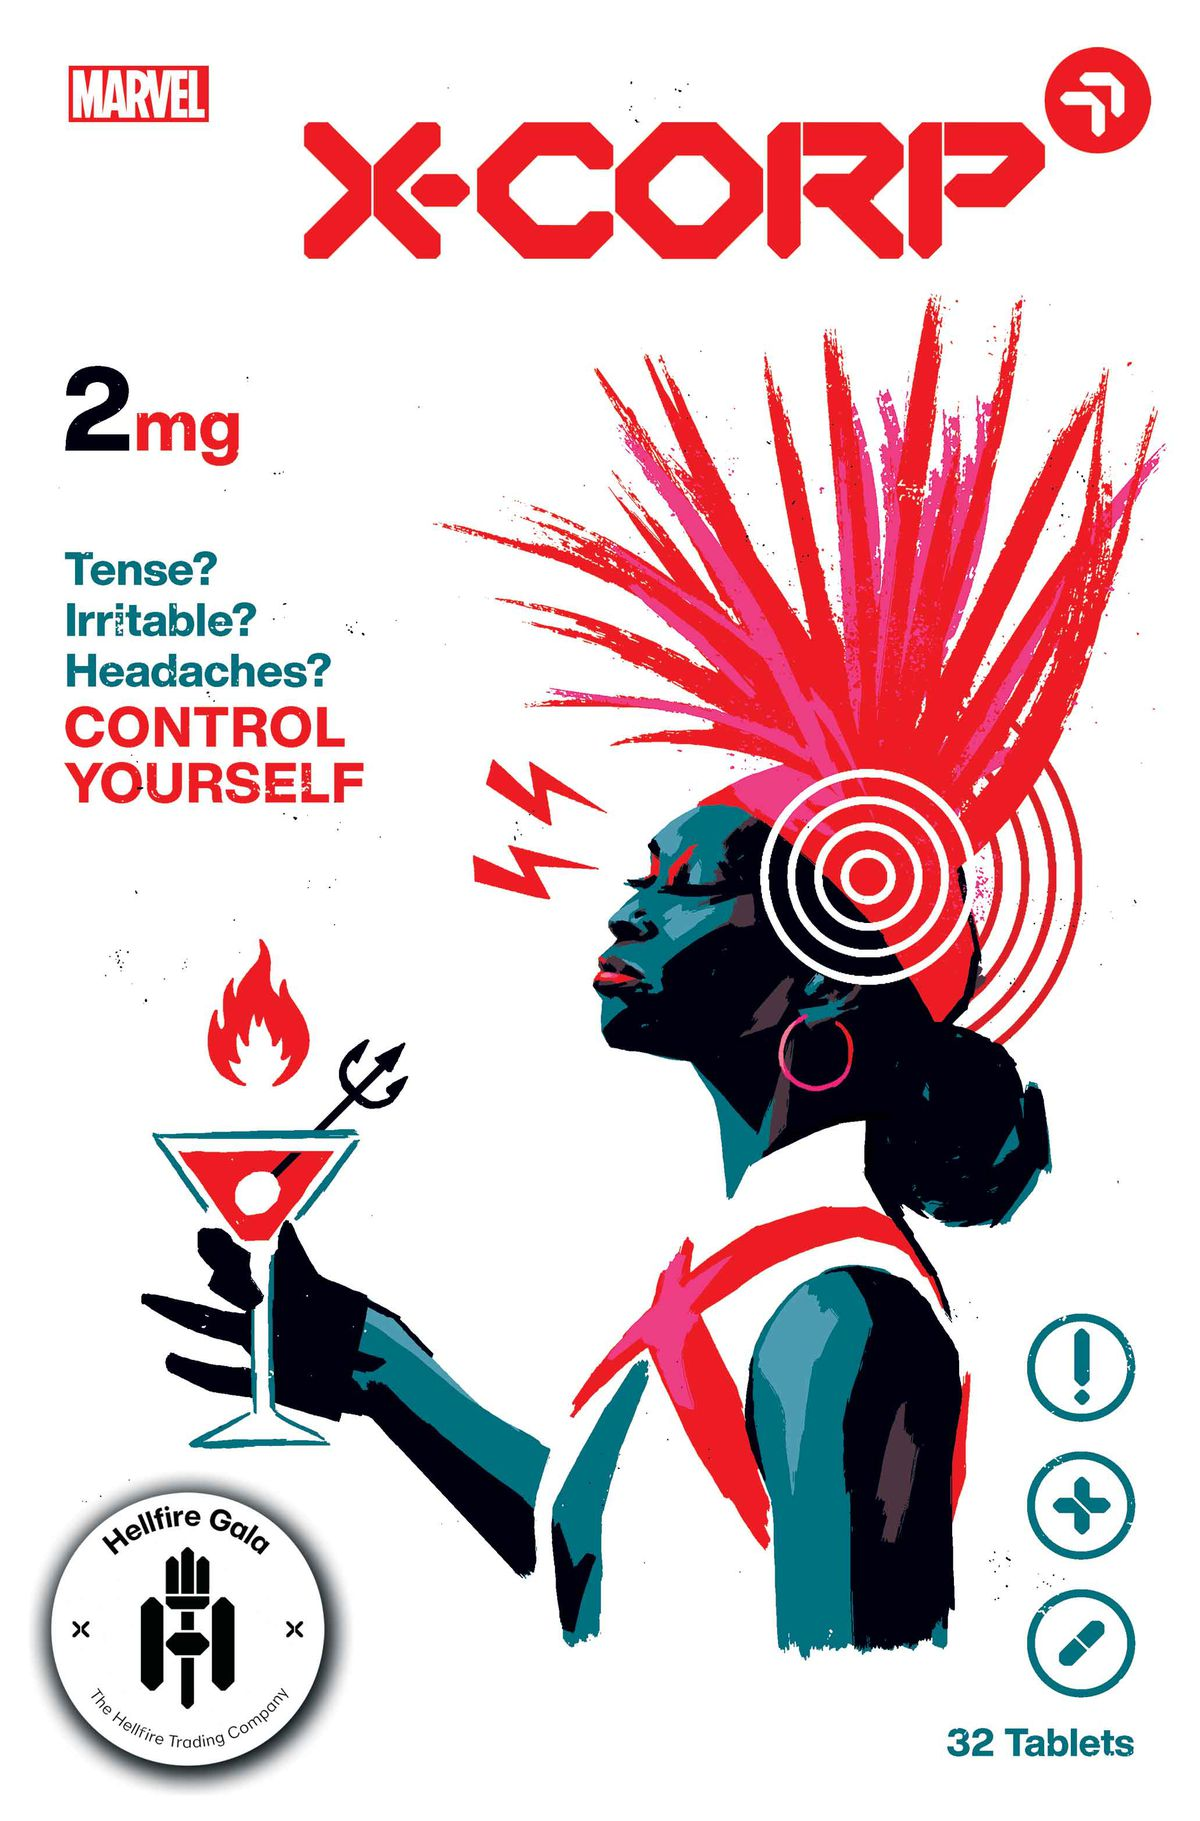 Monet, in profile, holding a Martini glass on the cover of X-Corp #2, Marvel Comics (2021)